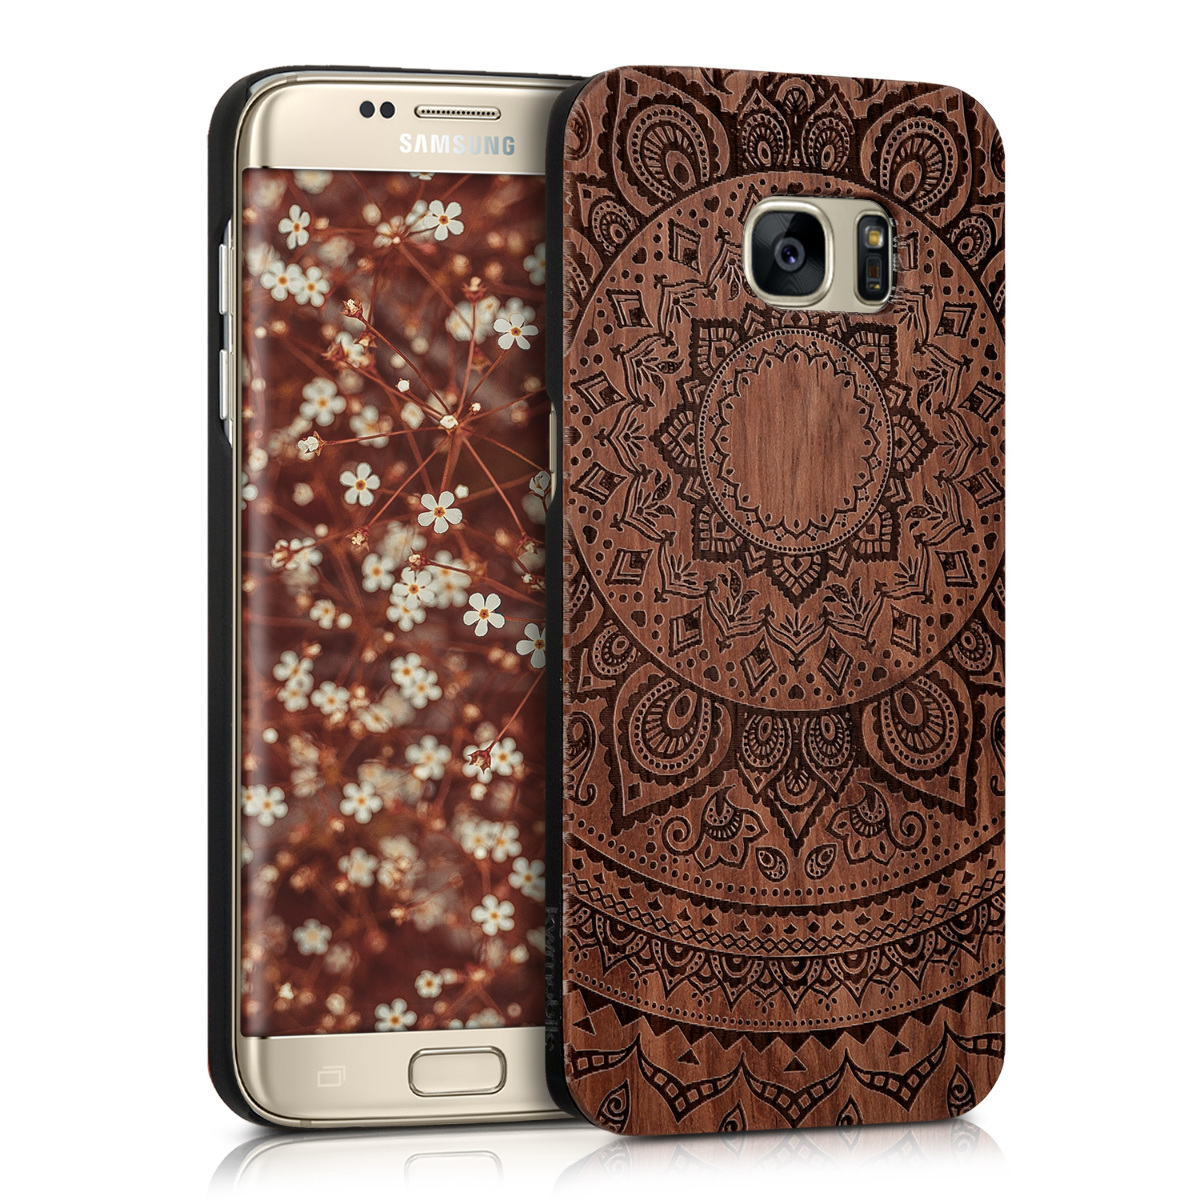 KW Σκληρή Ξύλινη Θήκη Samsung Galaxy S7 Edge - Brown - Mandala (39560.01)